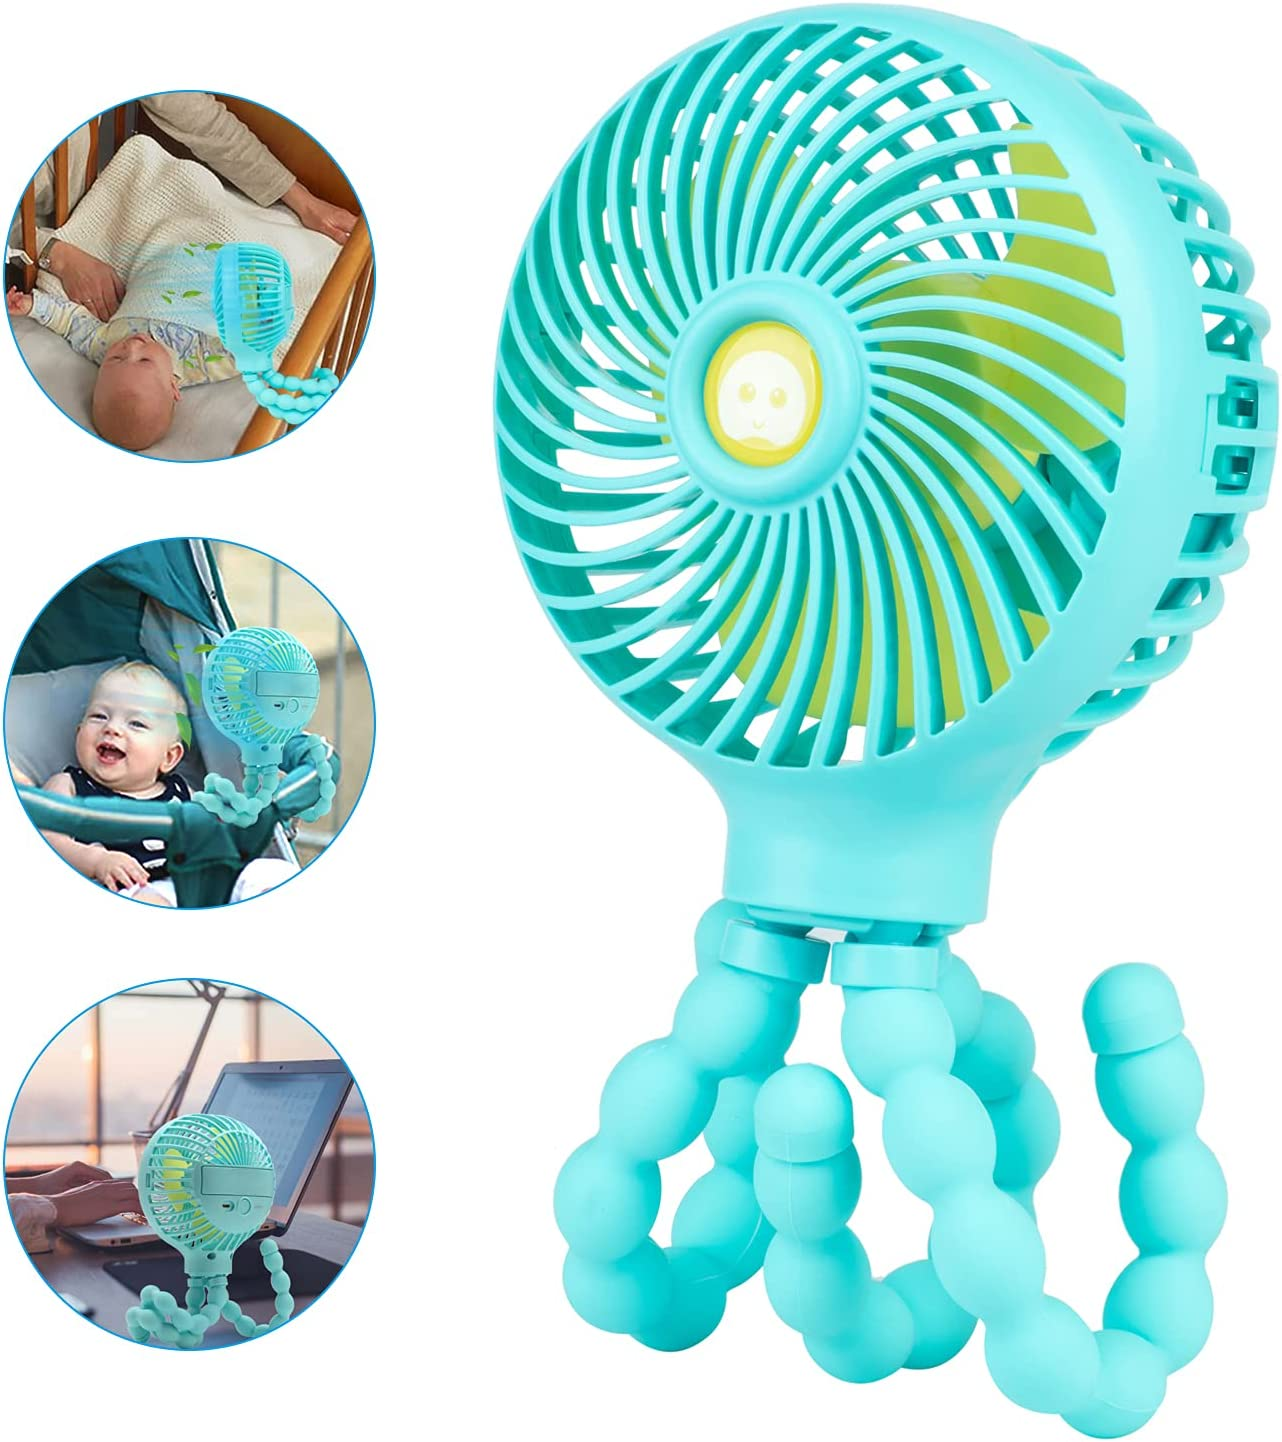 Car Seat Fans for Backseat Baby, Stroller Clip on Fan for Baby,USB Mini Battery Operated Handheld Fans for Baby Car Home Office Outside